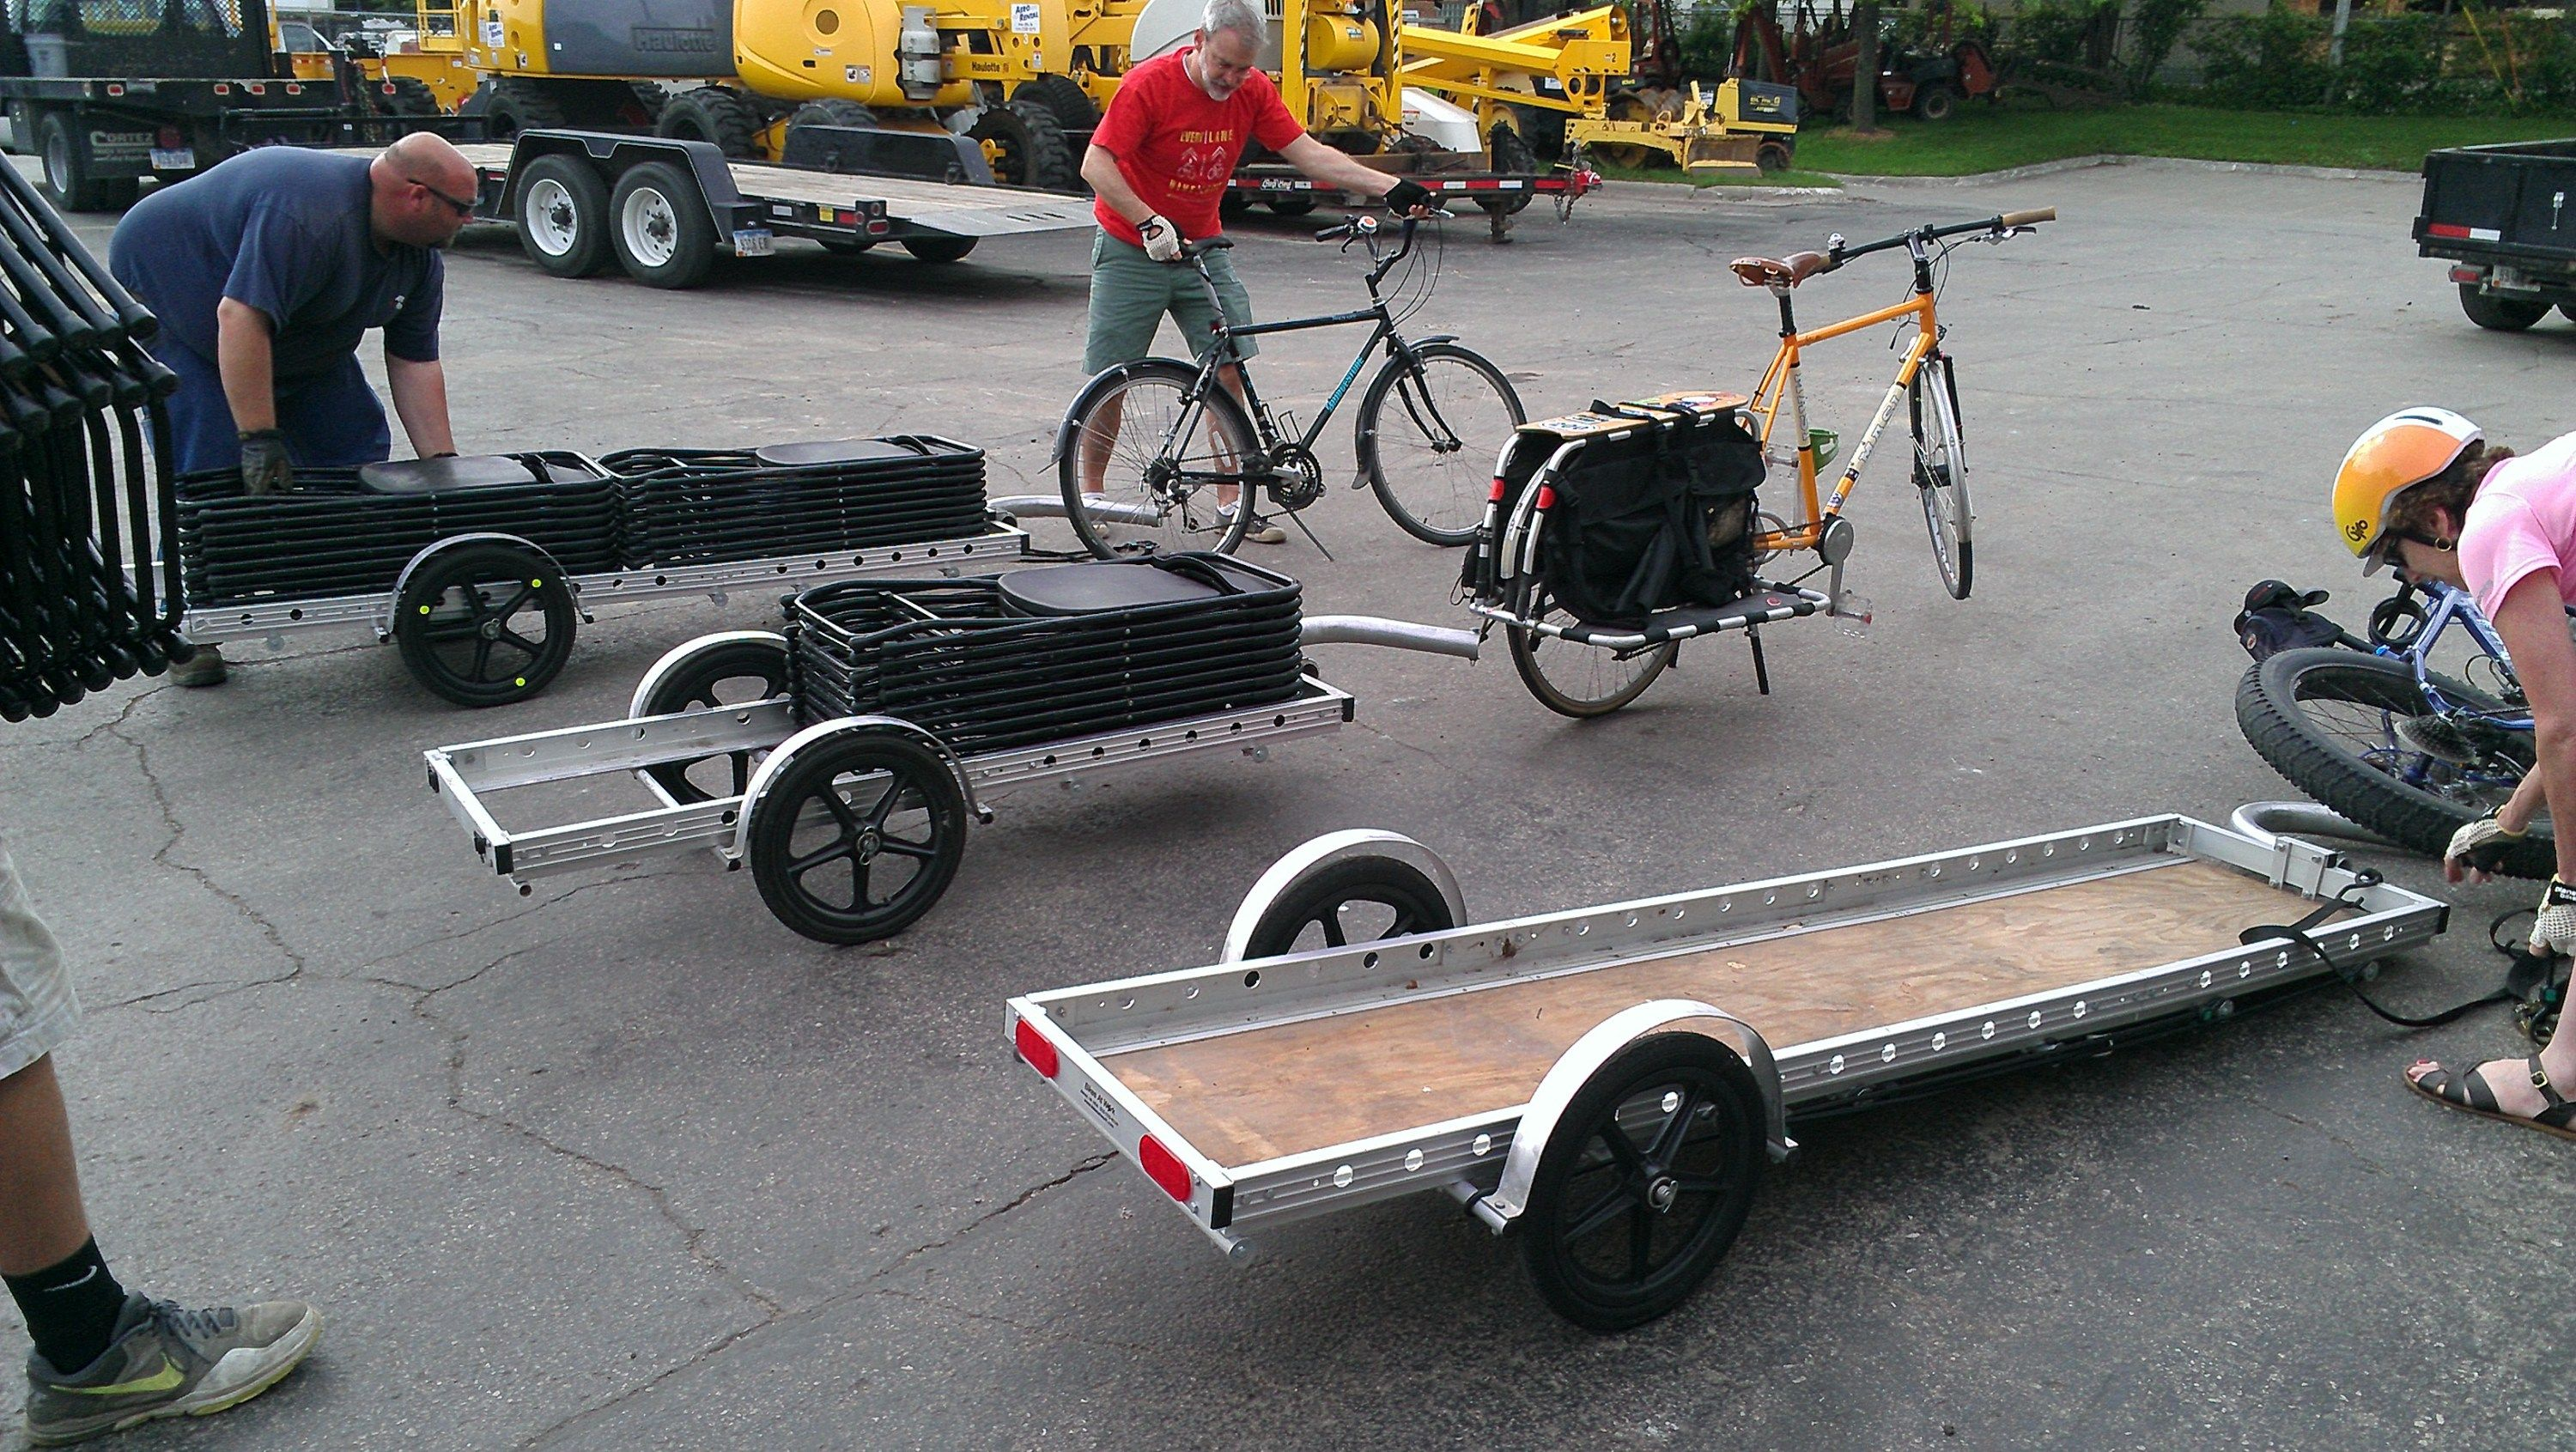 Bugging Out On A Bike Cargo Trailers Bugging Out Shtf No Gas Plan B Preparing Getting Around Bik Bicycle Cargo Trailer Bike Cargo Trailer Bike Trailer